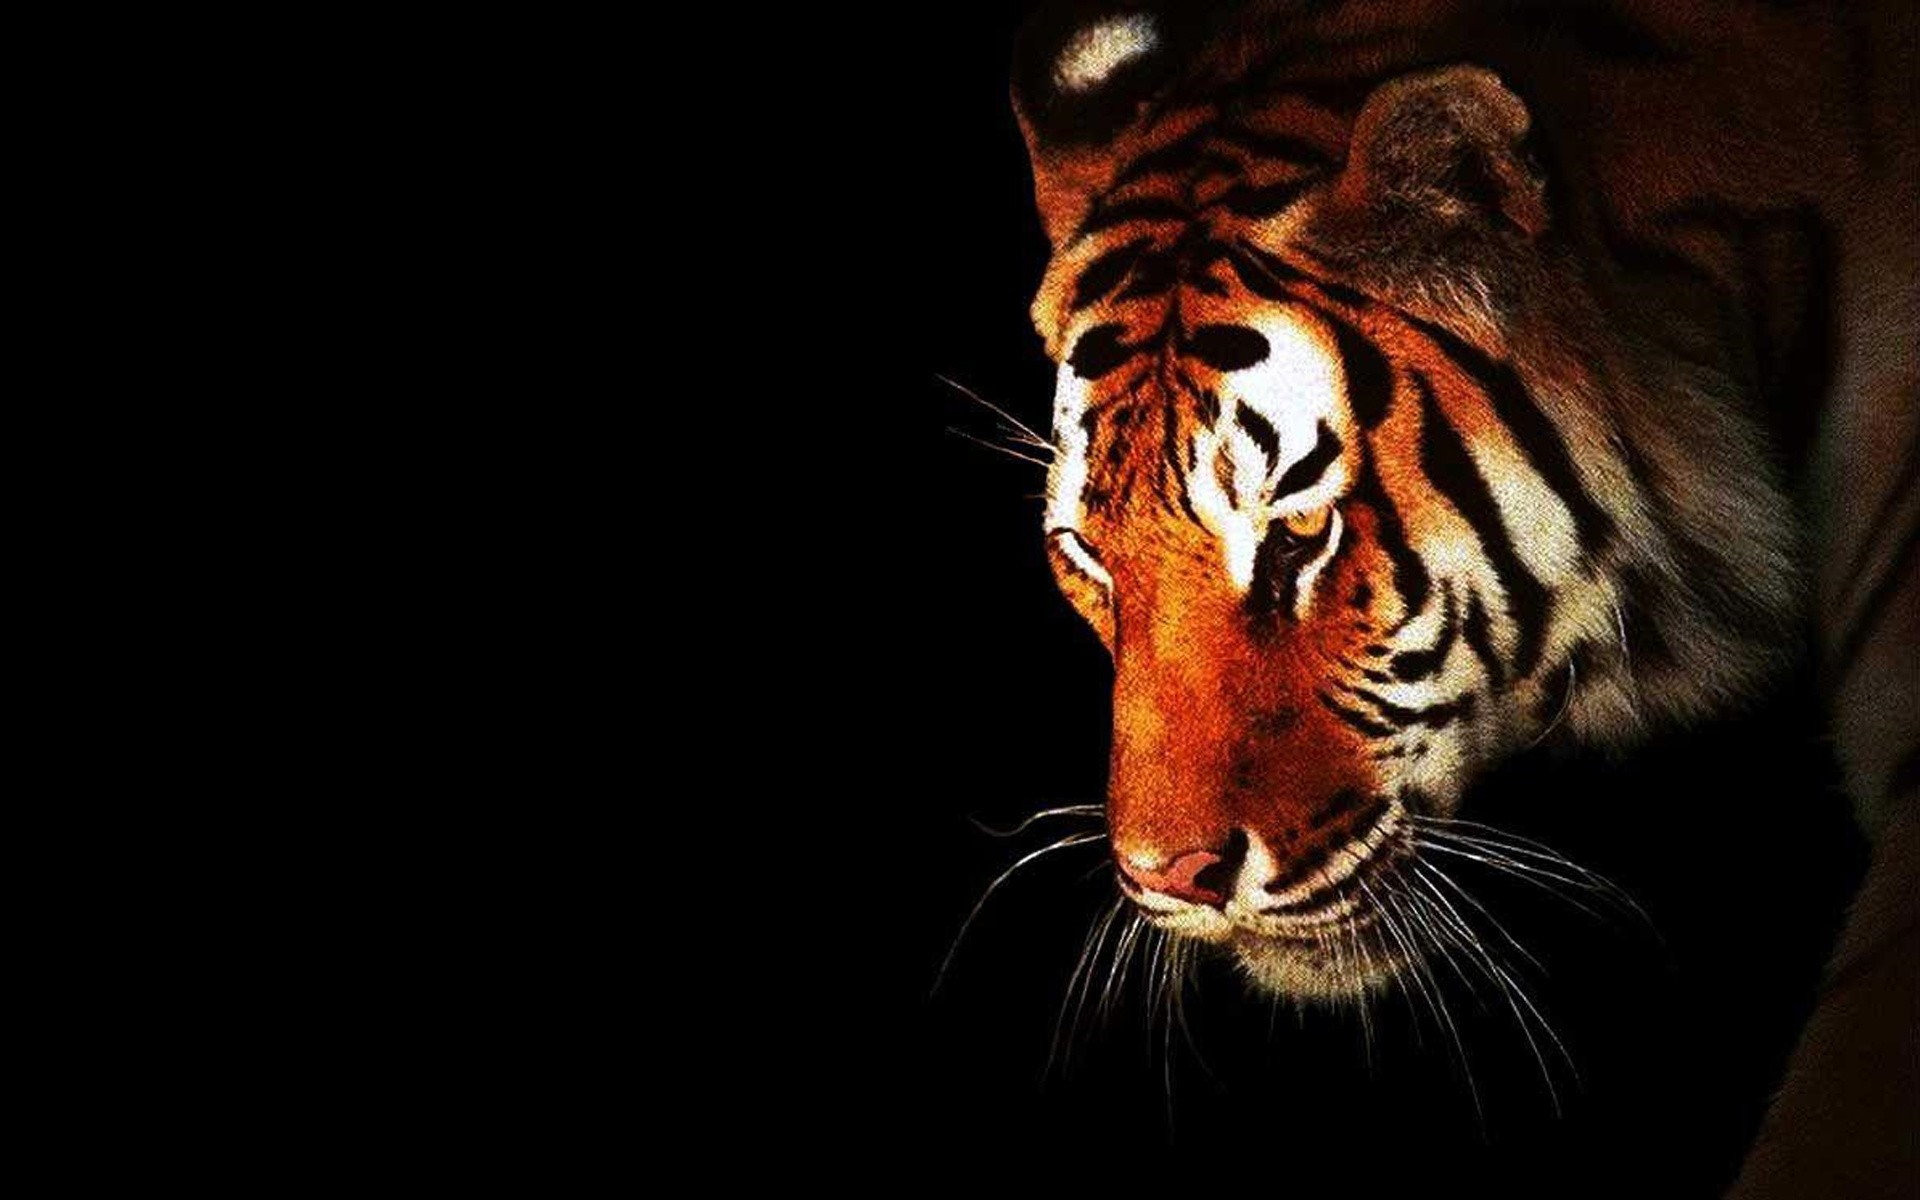 Tiger Backgrounds Design – Design & art